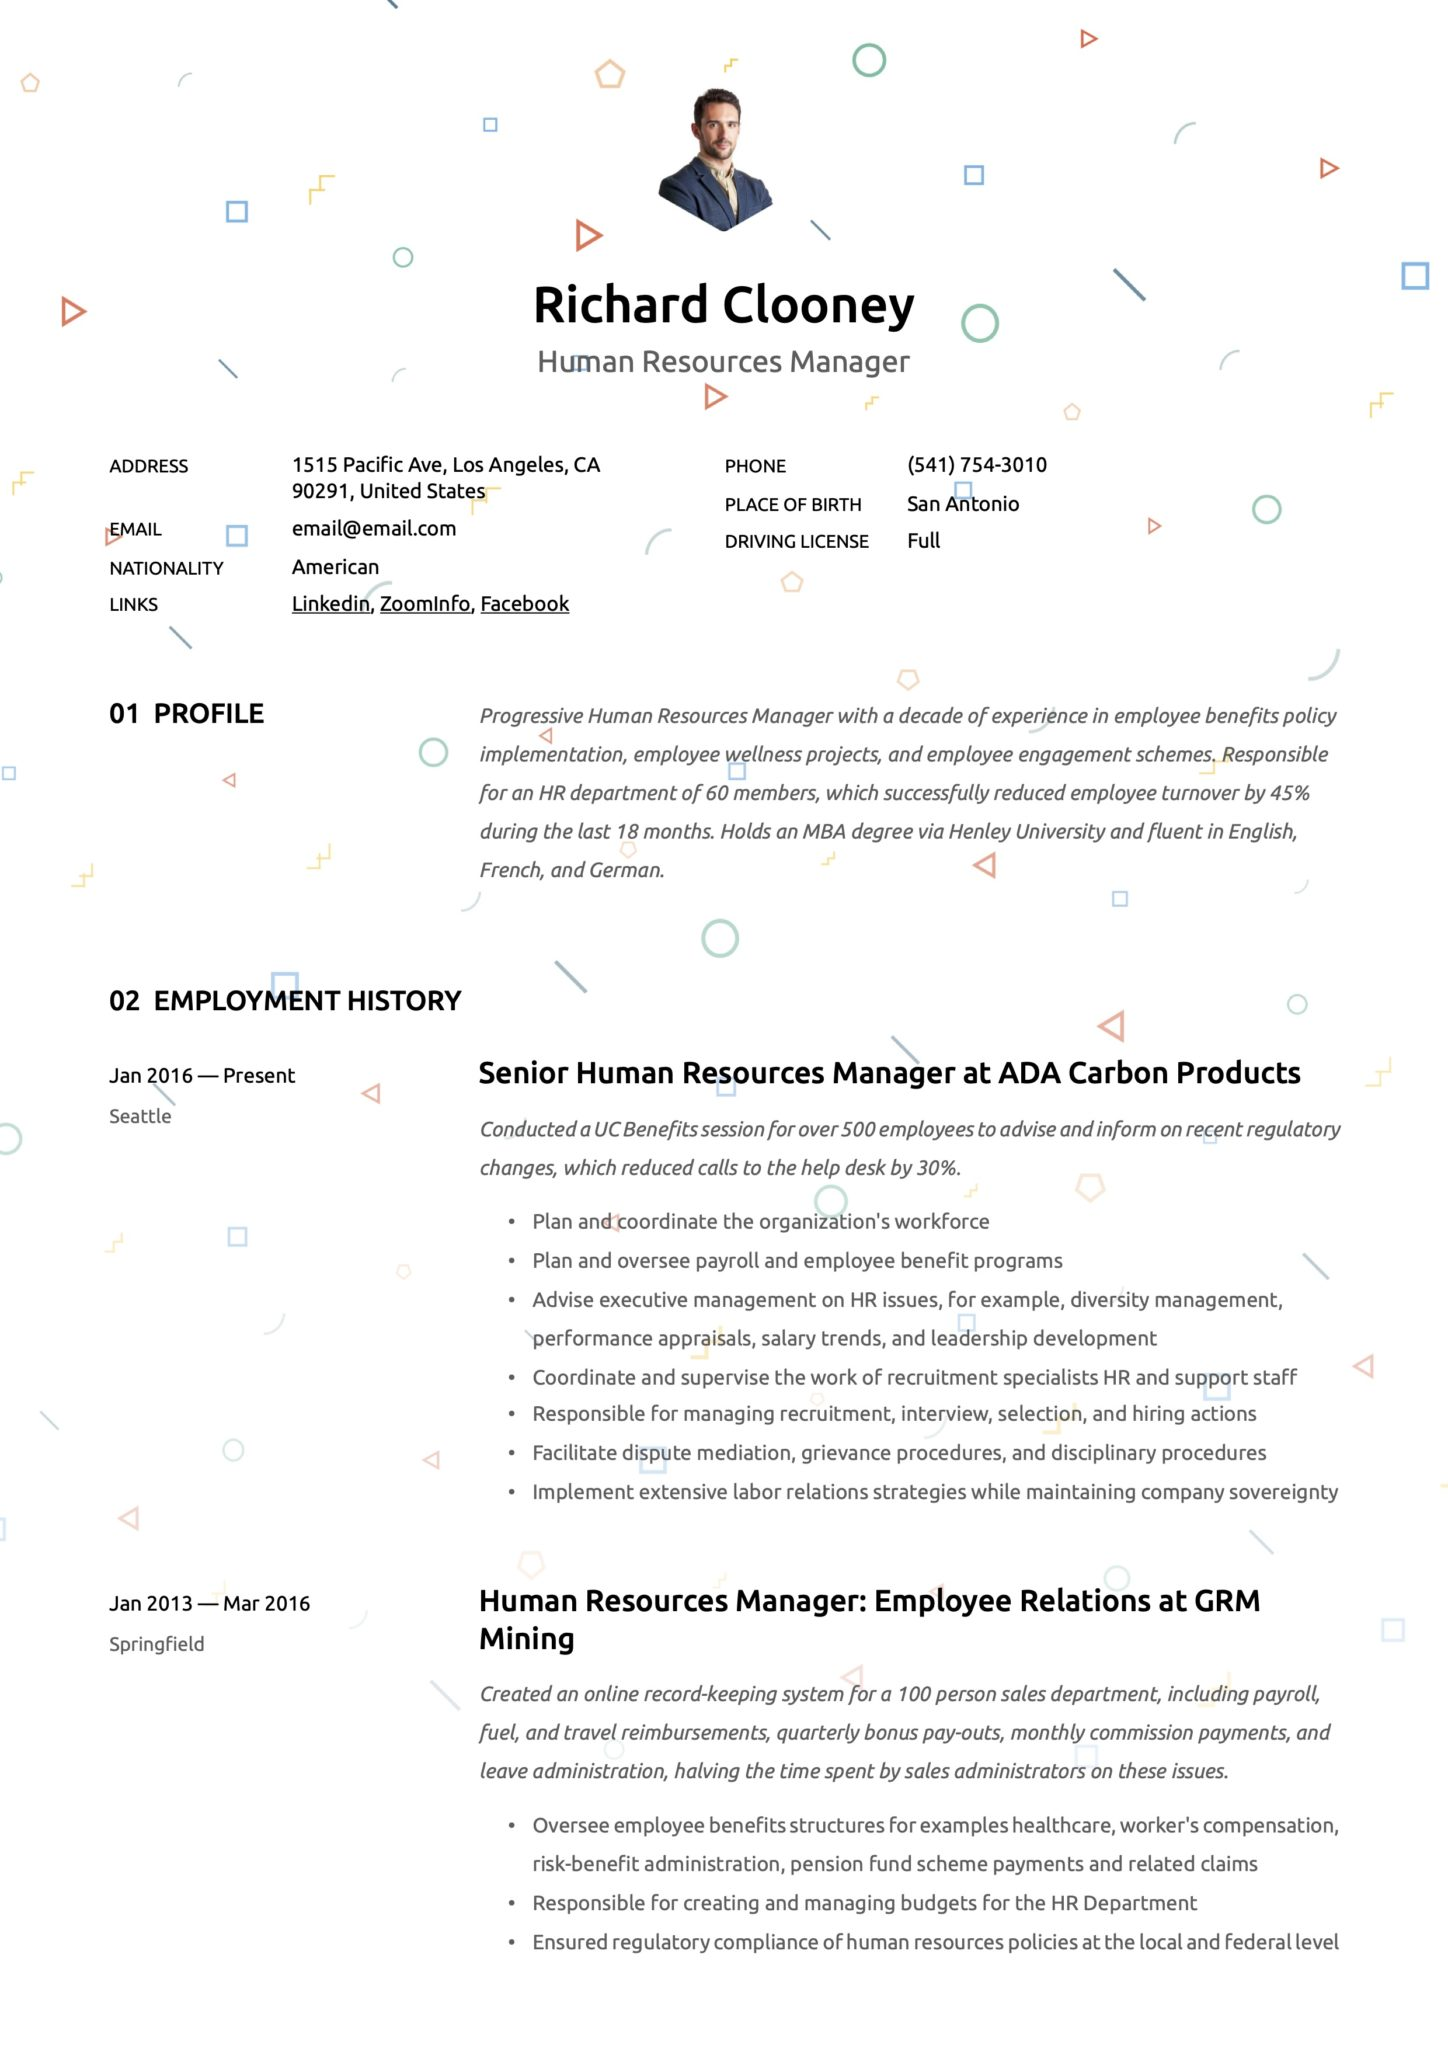 human resources manager resumes guide resource management resume example scaled casac Resume Resource Management Resume Example